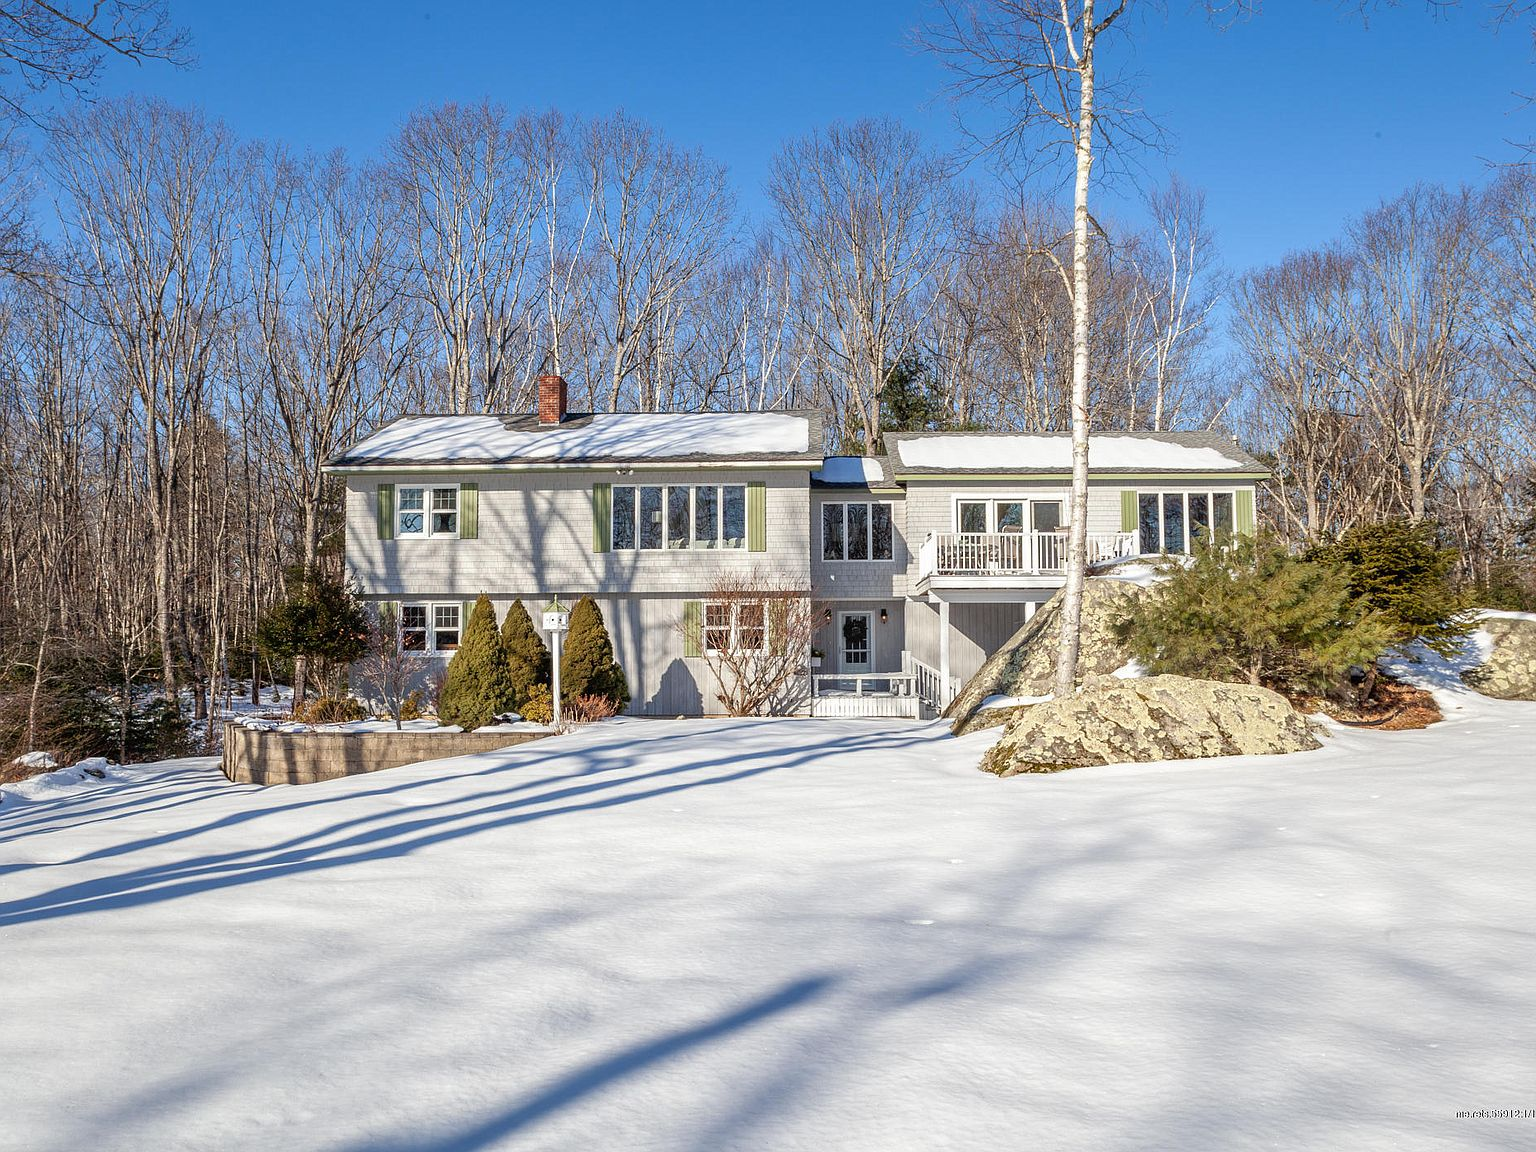 3 Ice House Rd Biddeford Me 04005 Zillow